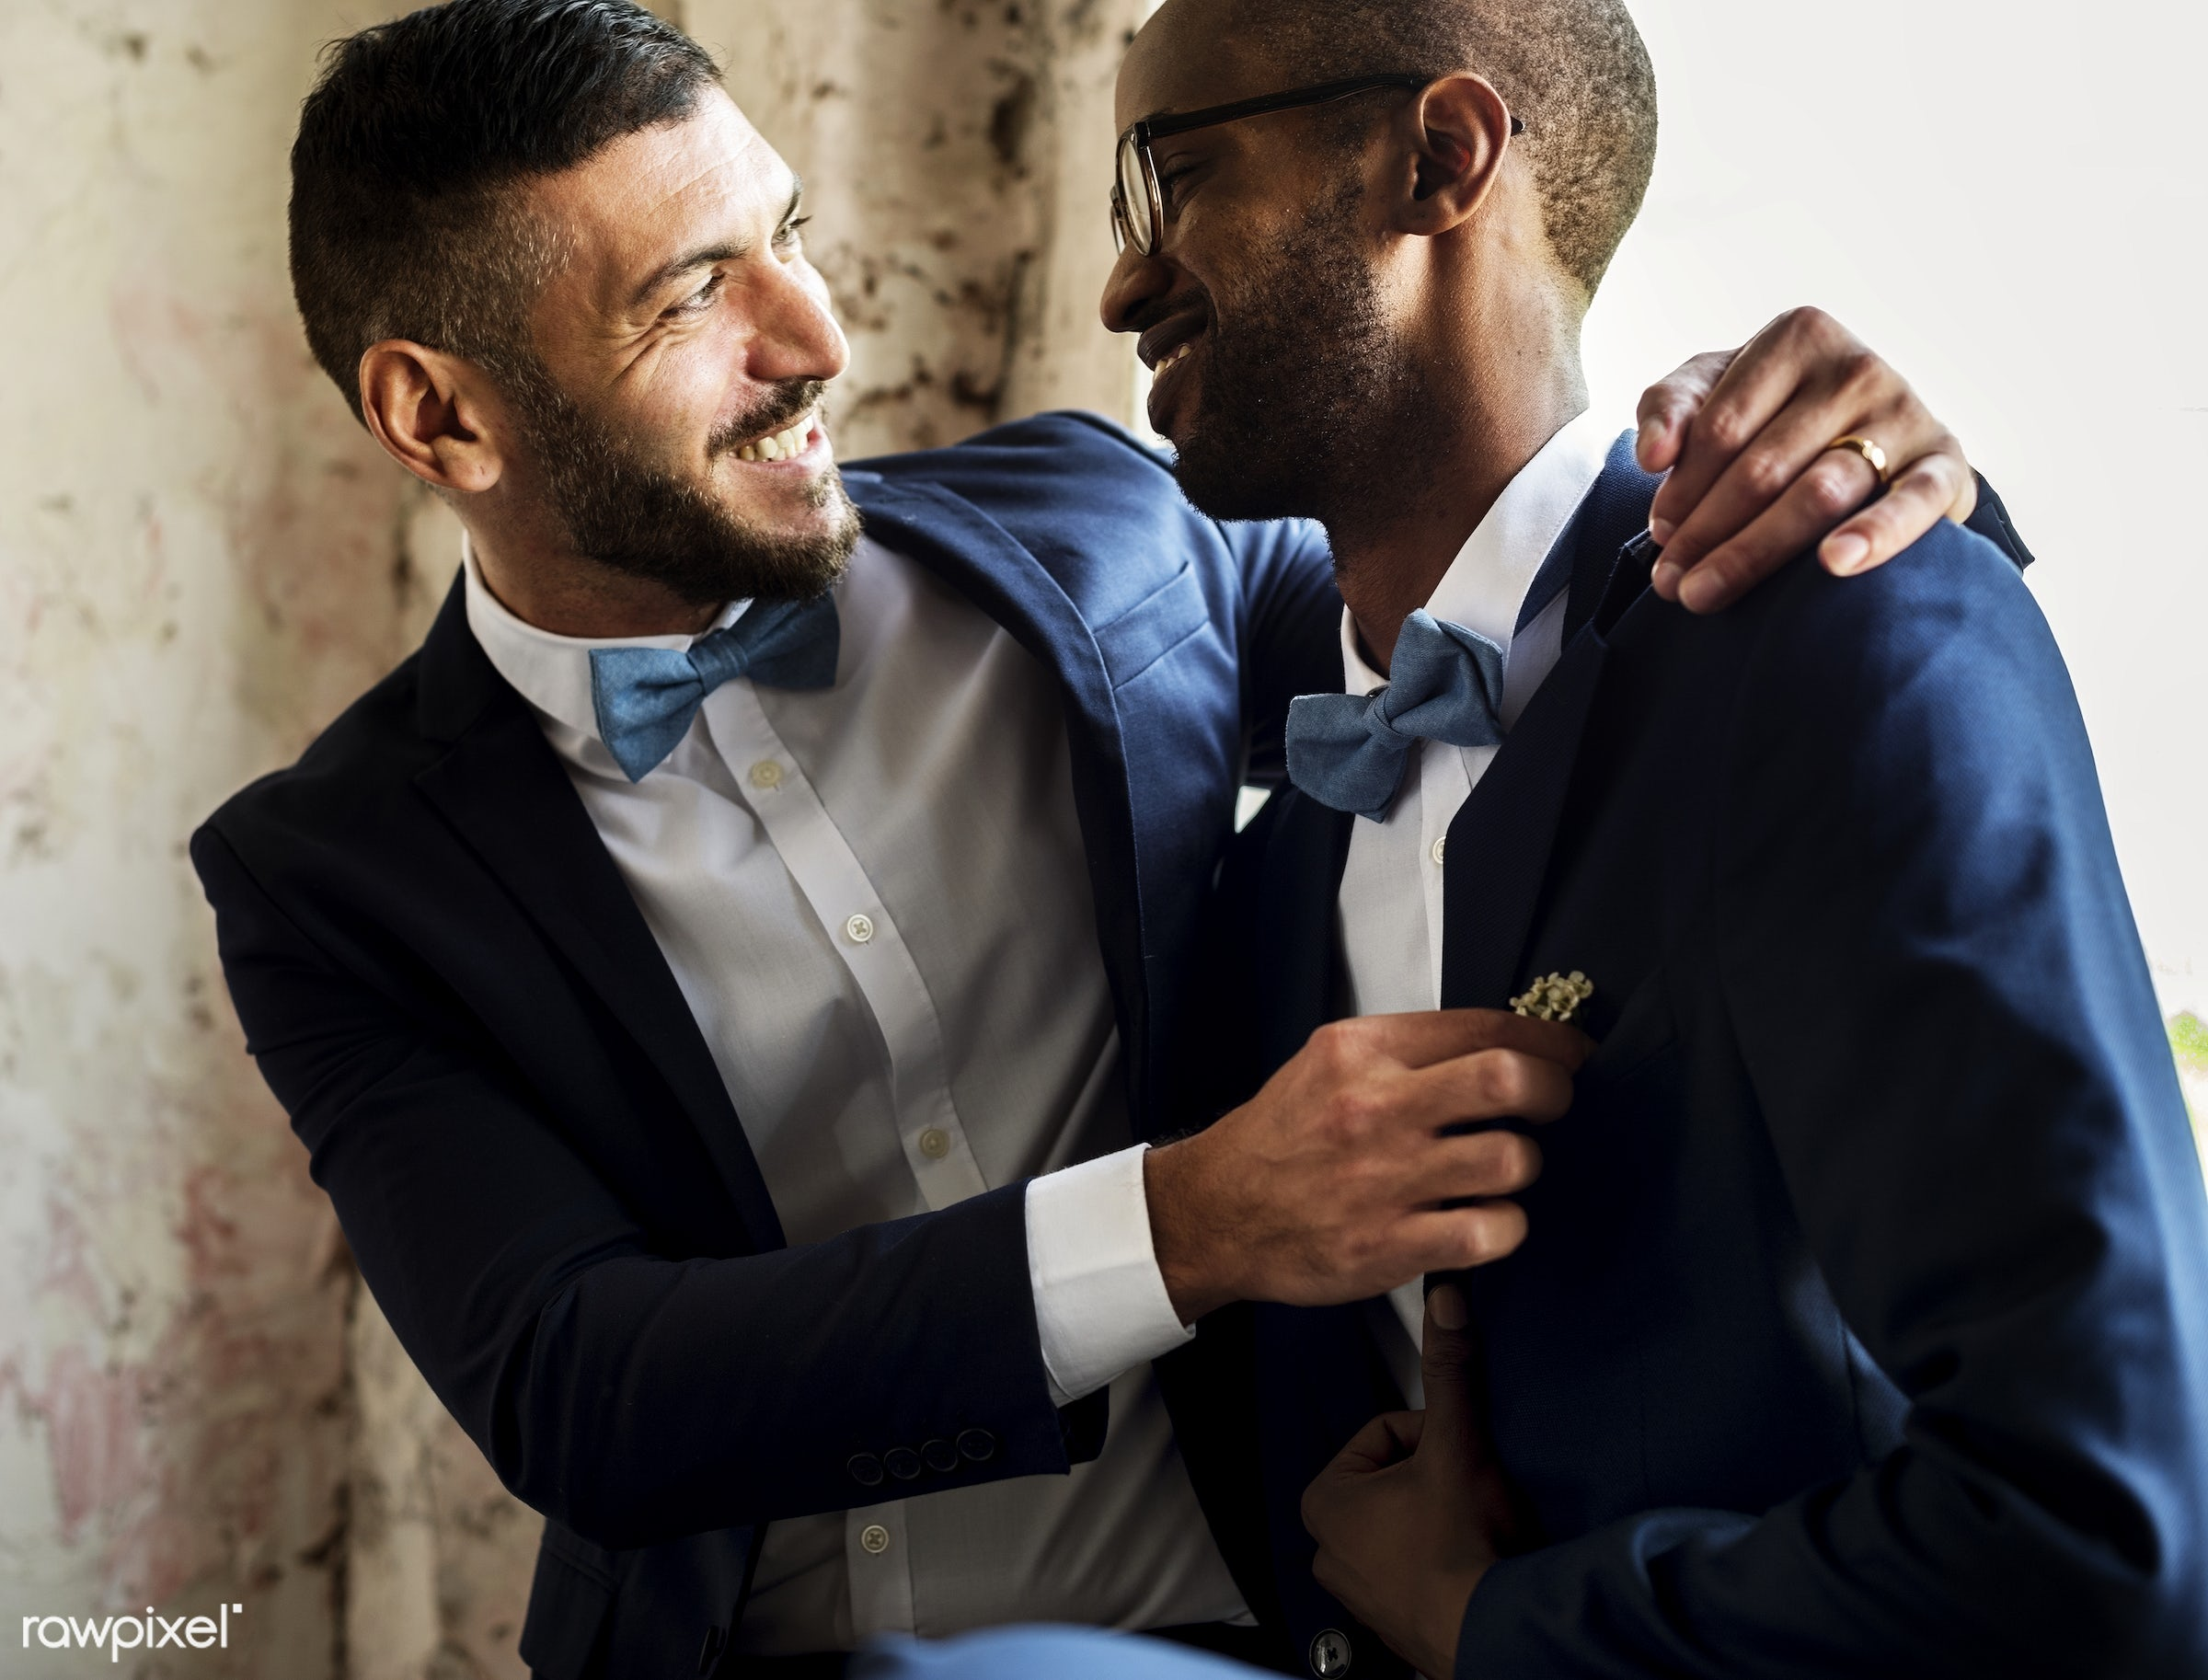 person, holding, occasion, love, married, friends, hands, suits, couple, men, cheerful, smiling, diversity, wearing,...